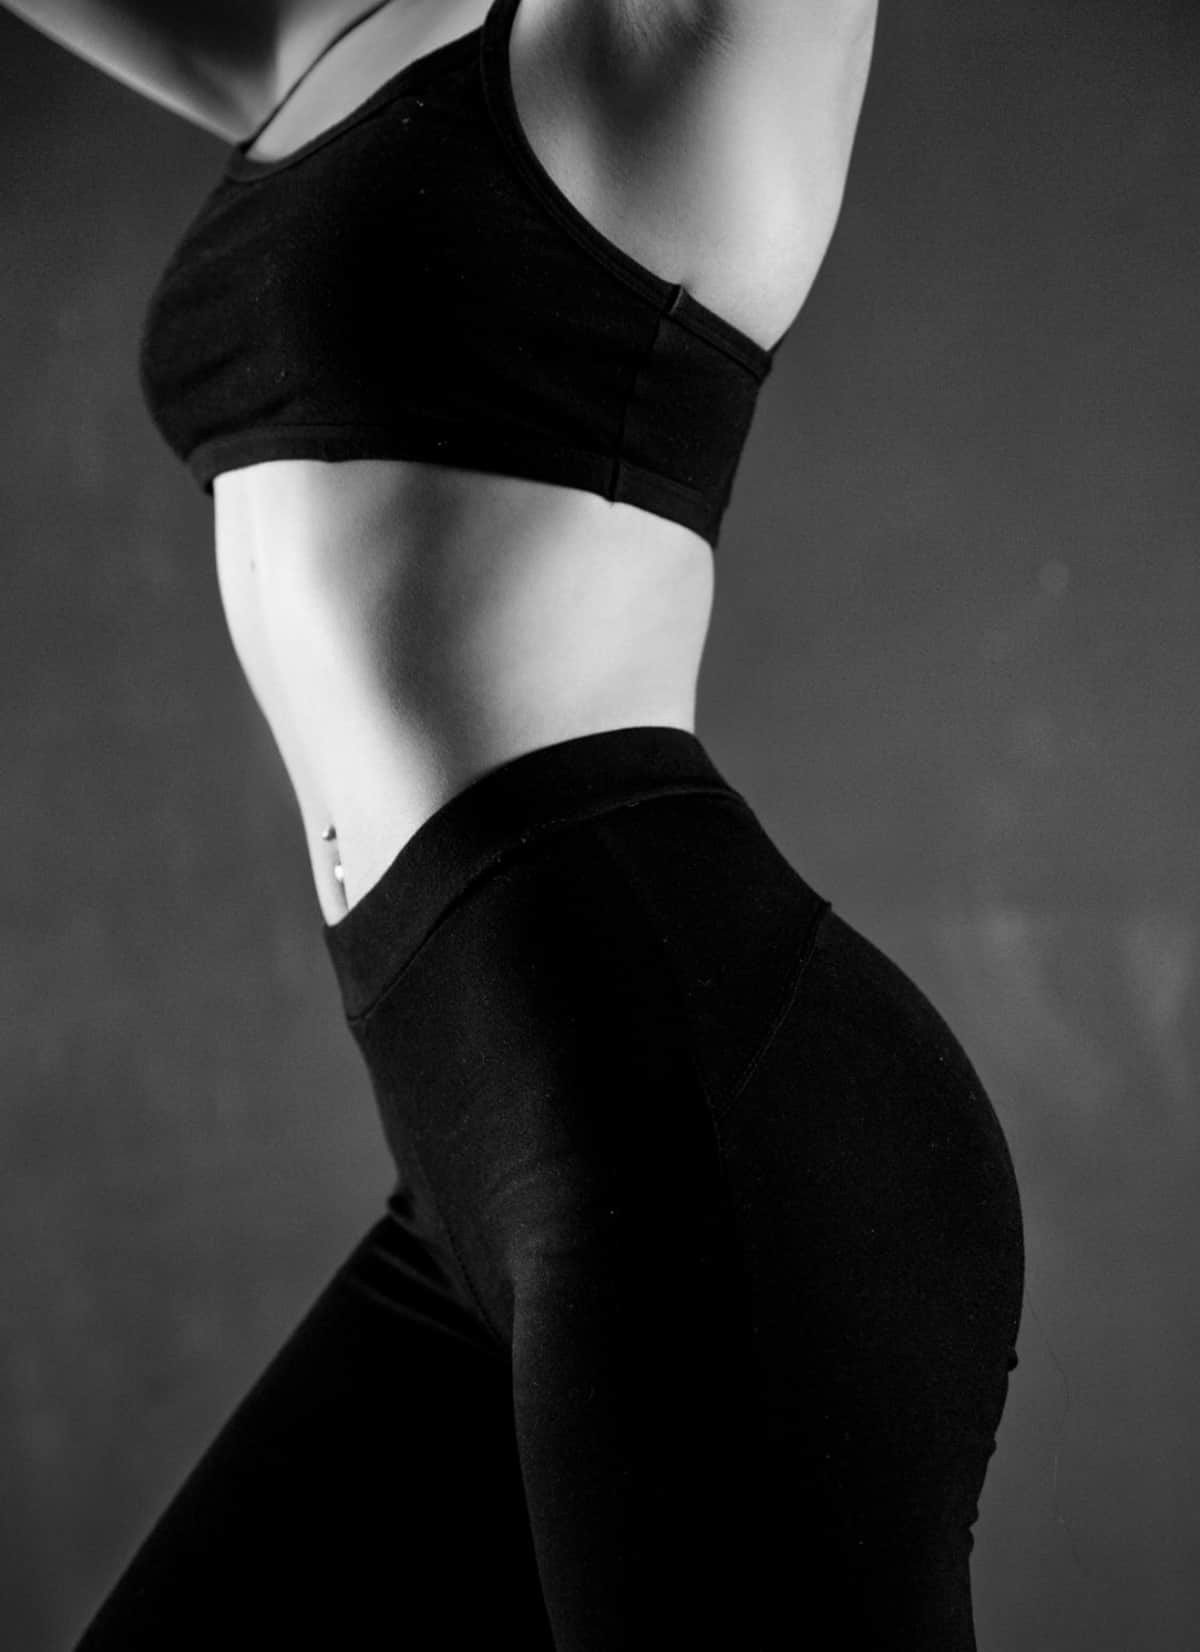 a healthy and fit female body